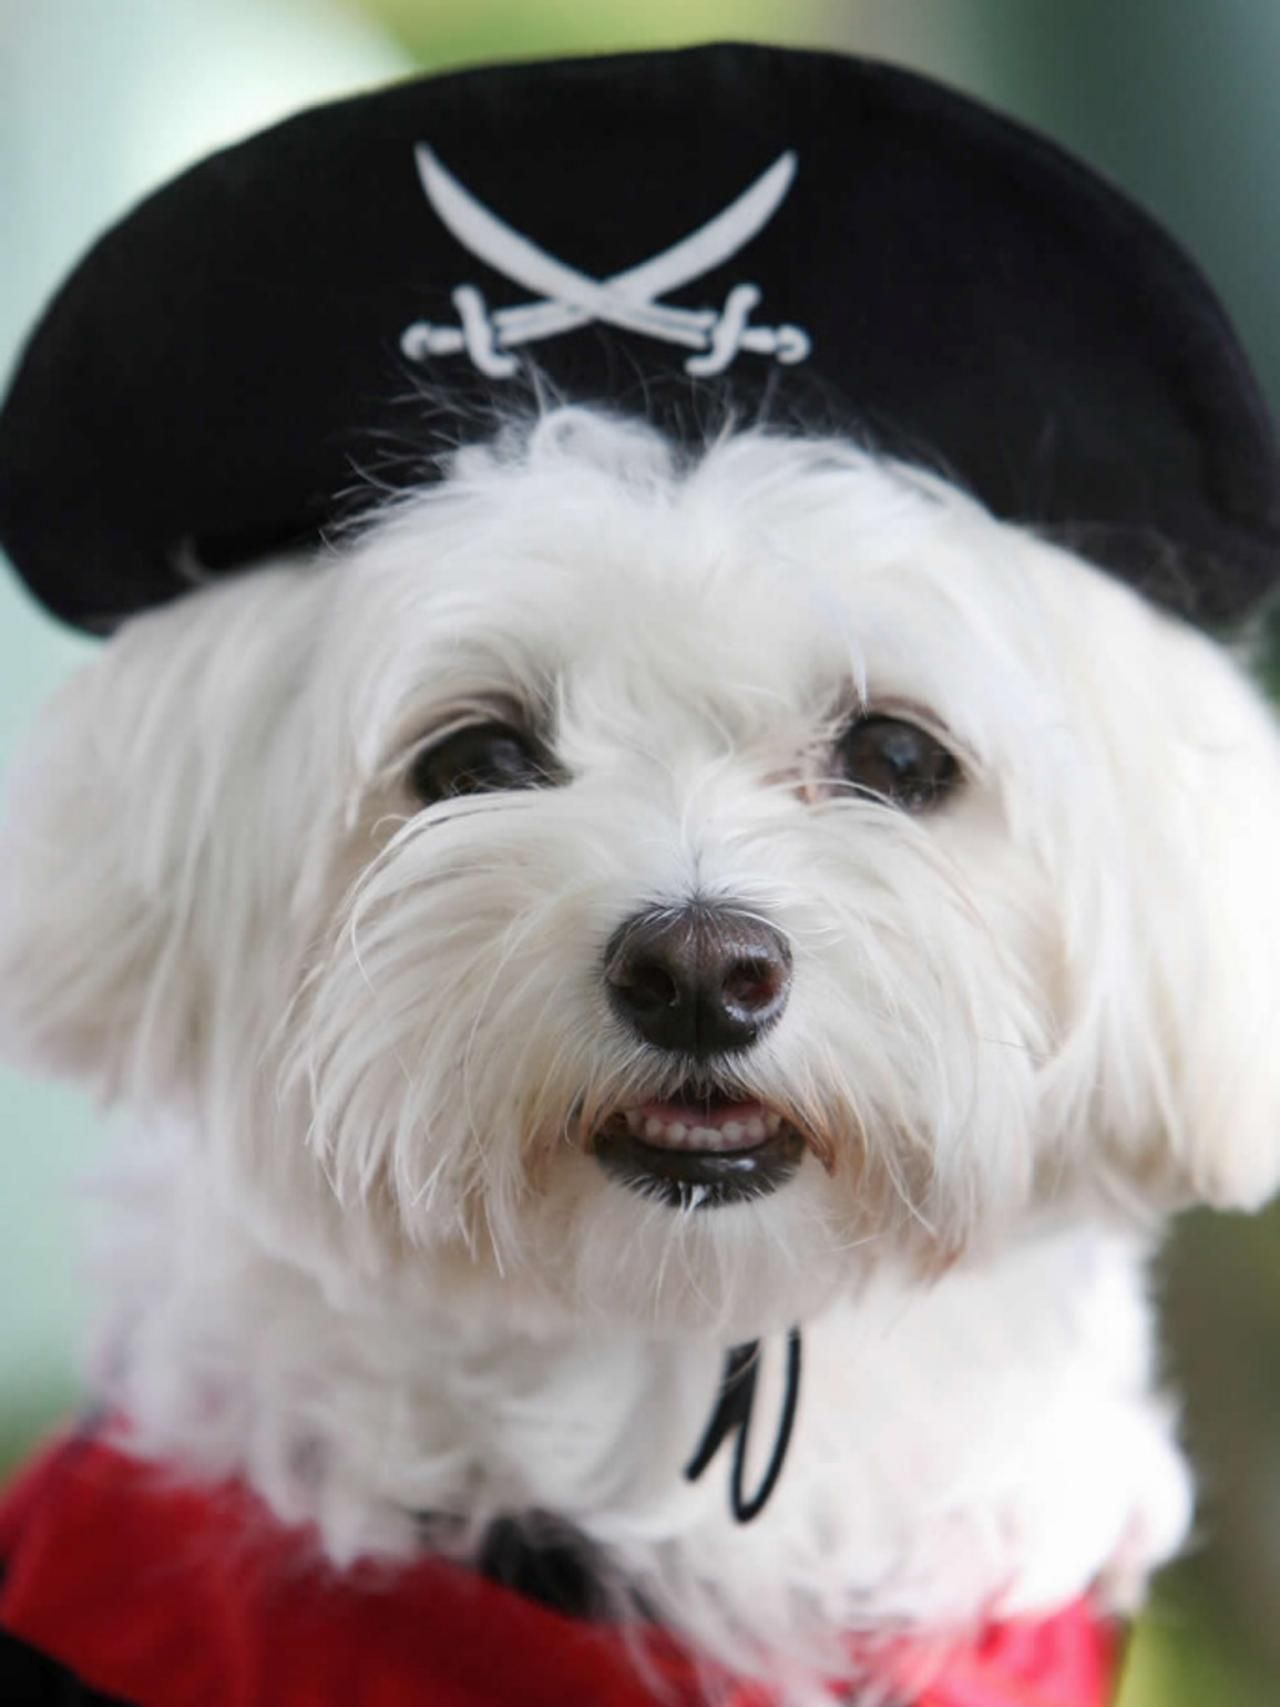 Halloween Costume Ideas for Dogs and Cats   Diy party ideas, Home ...